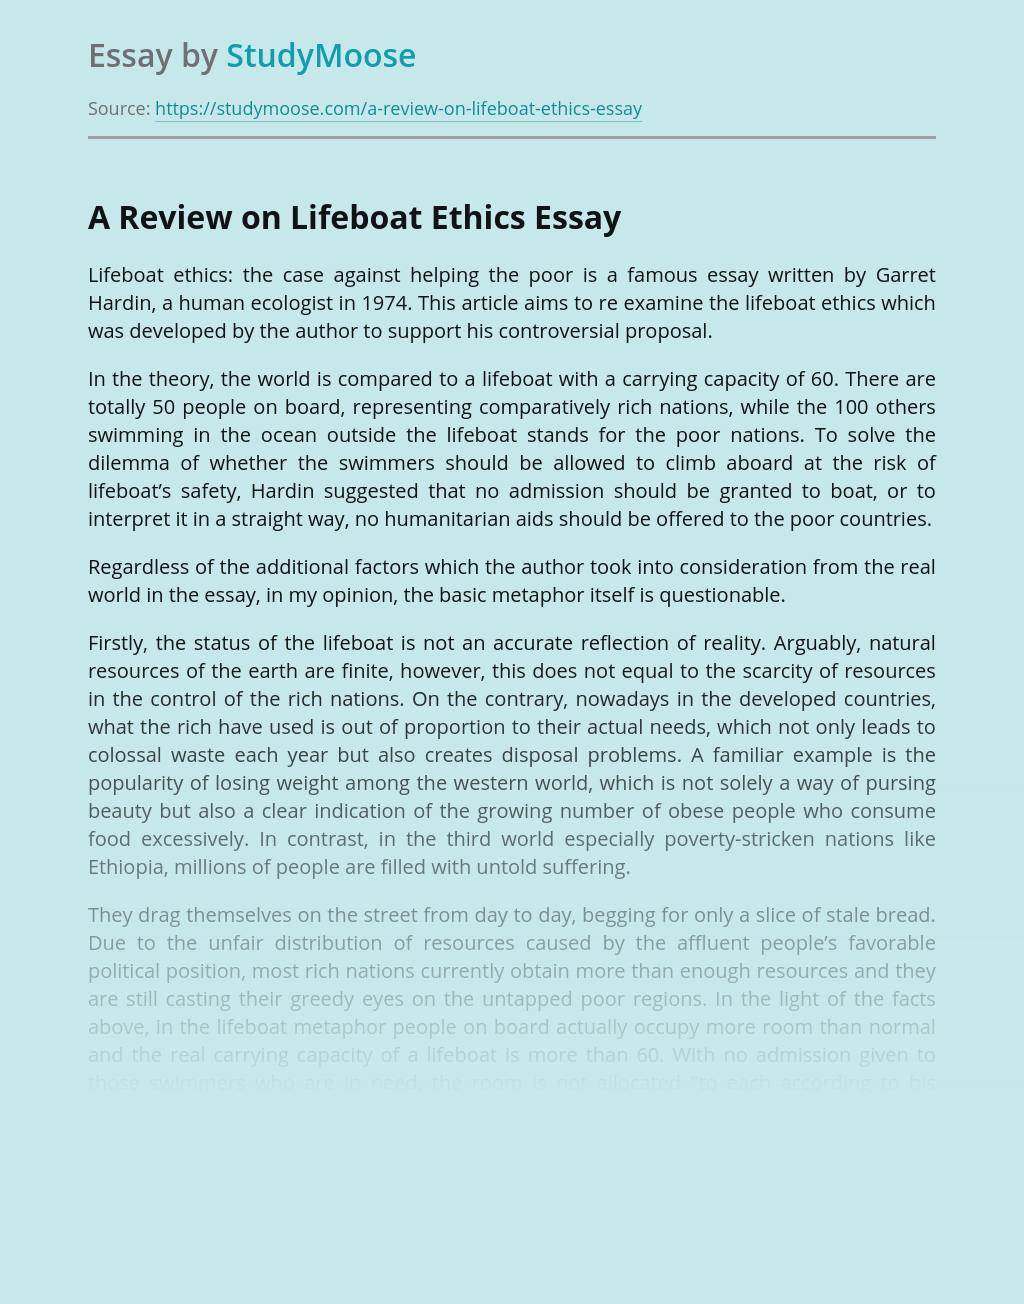 A Review on Lifeboat Ethics